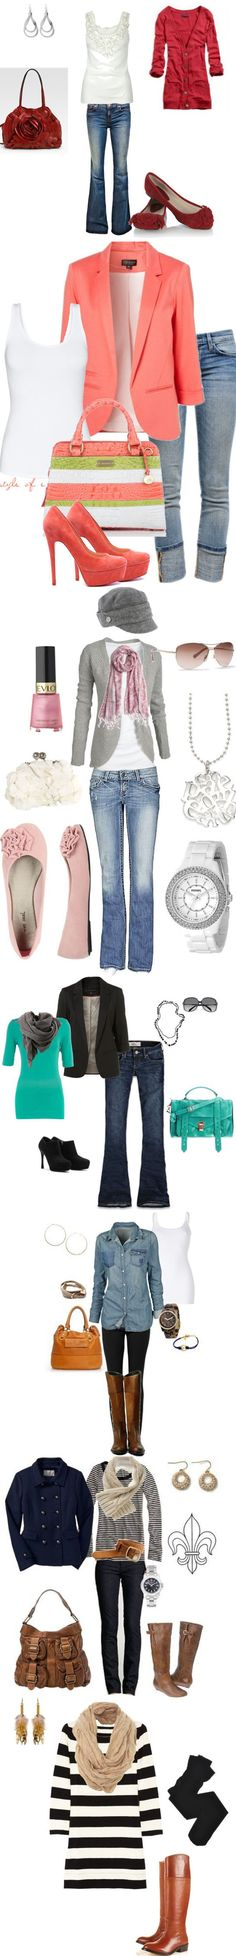 26 fall fashions. Yes yes yes :)